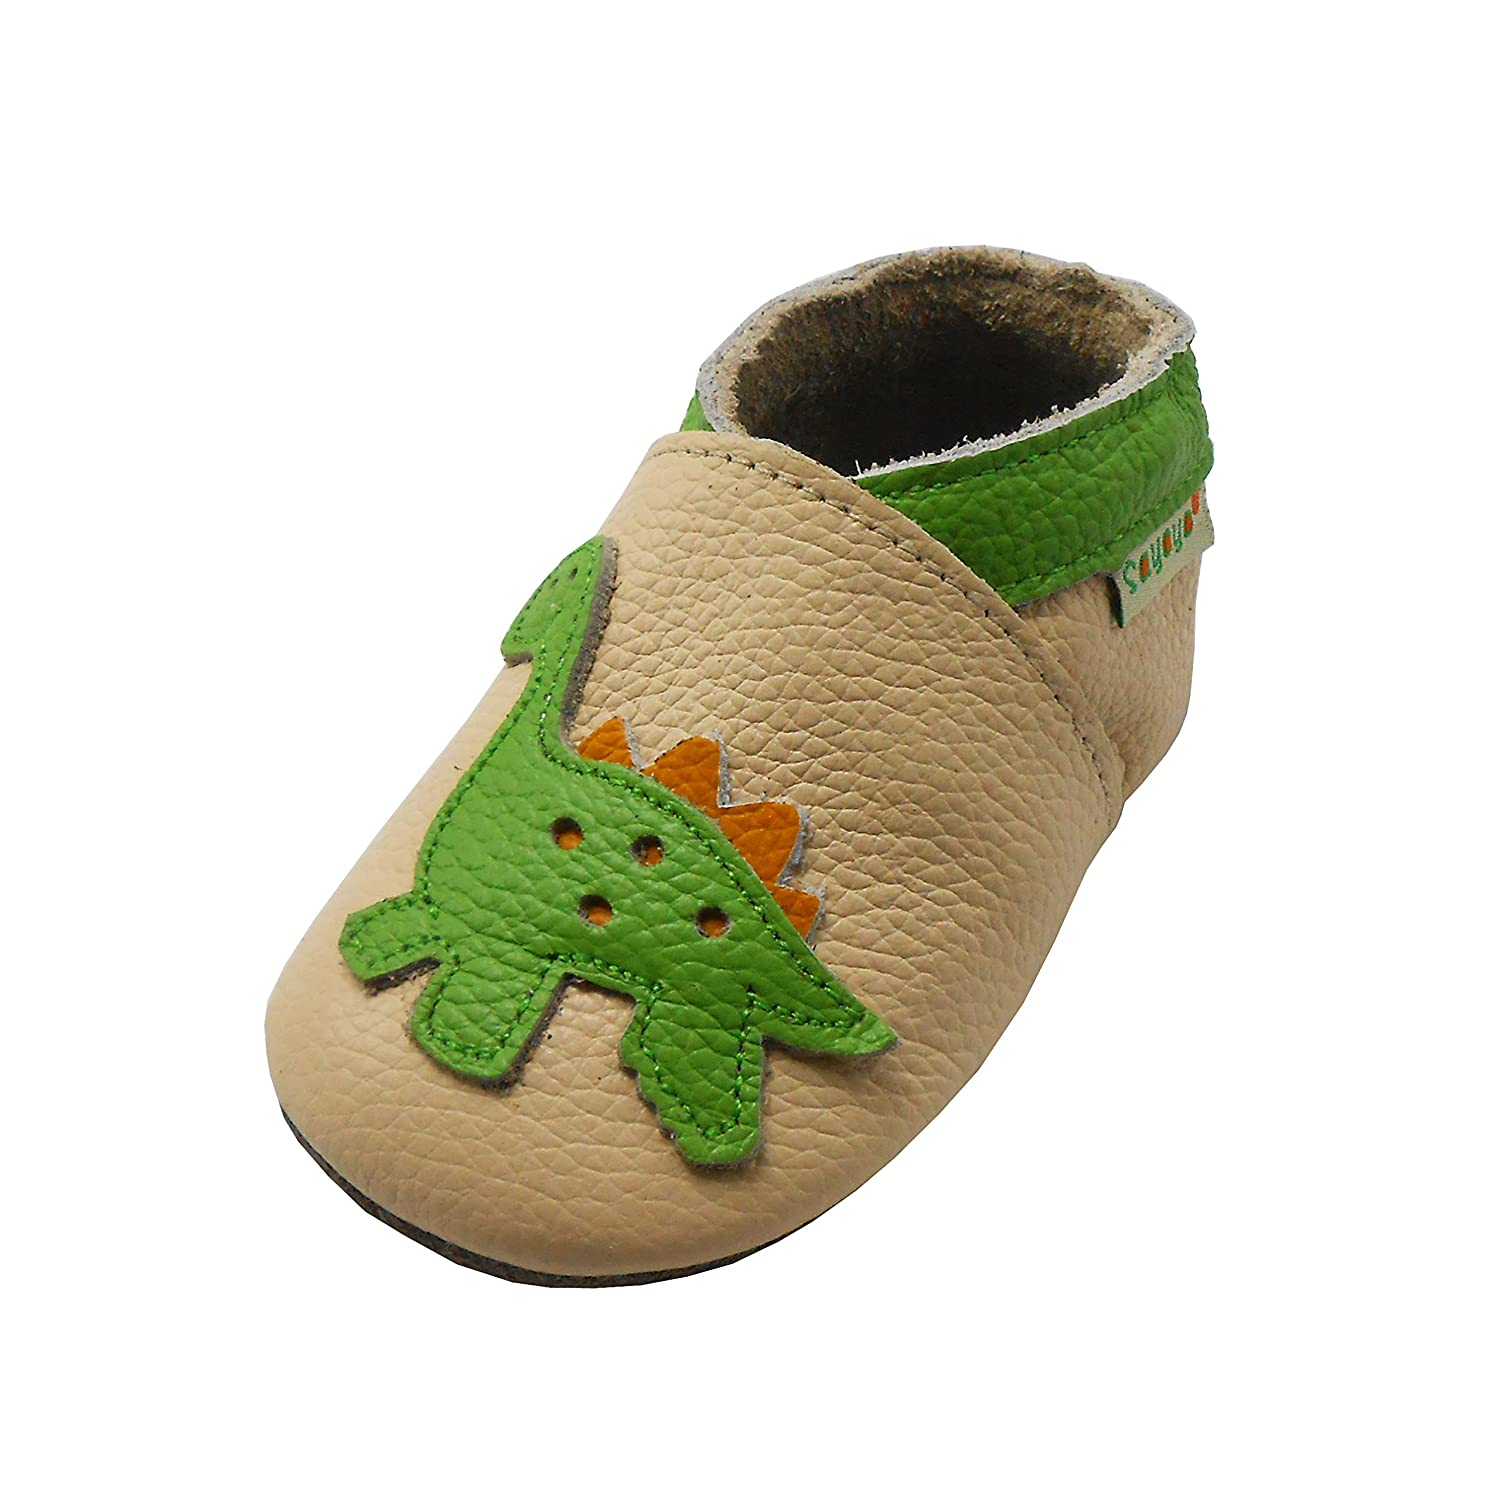 Sayoyo Baby Dinosaurs Soft Sole Beige Leather Infant and Toddler Shoes 1062